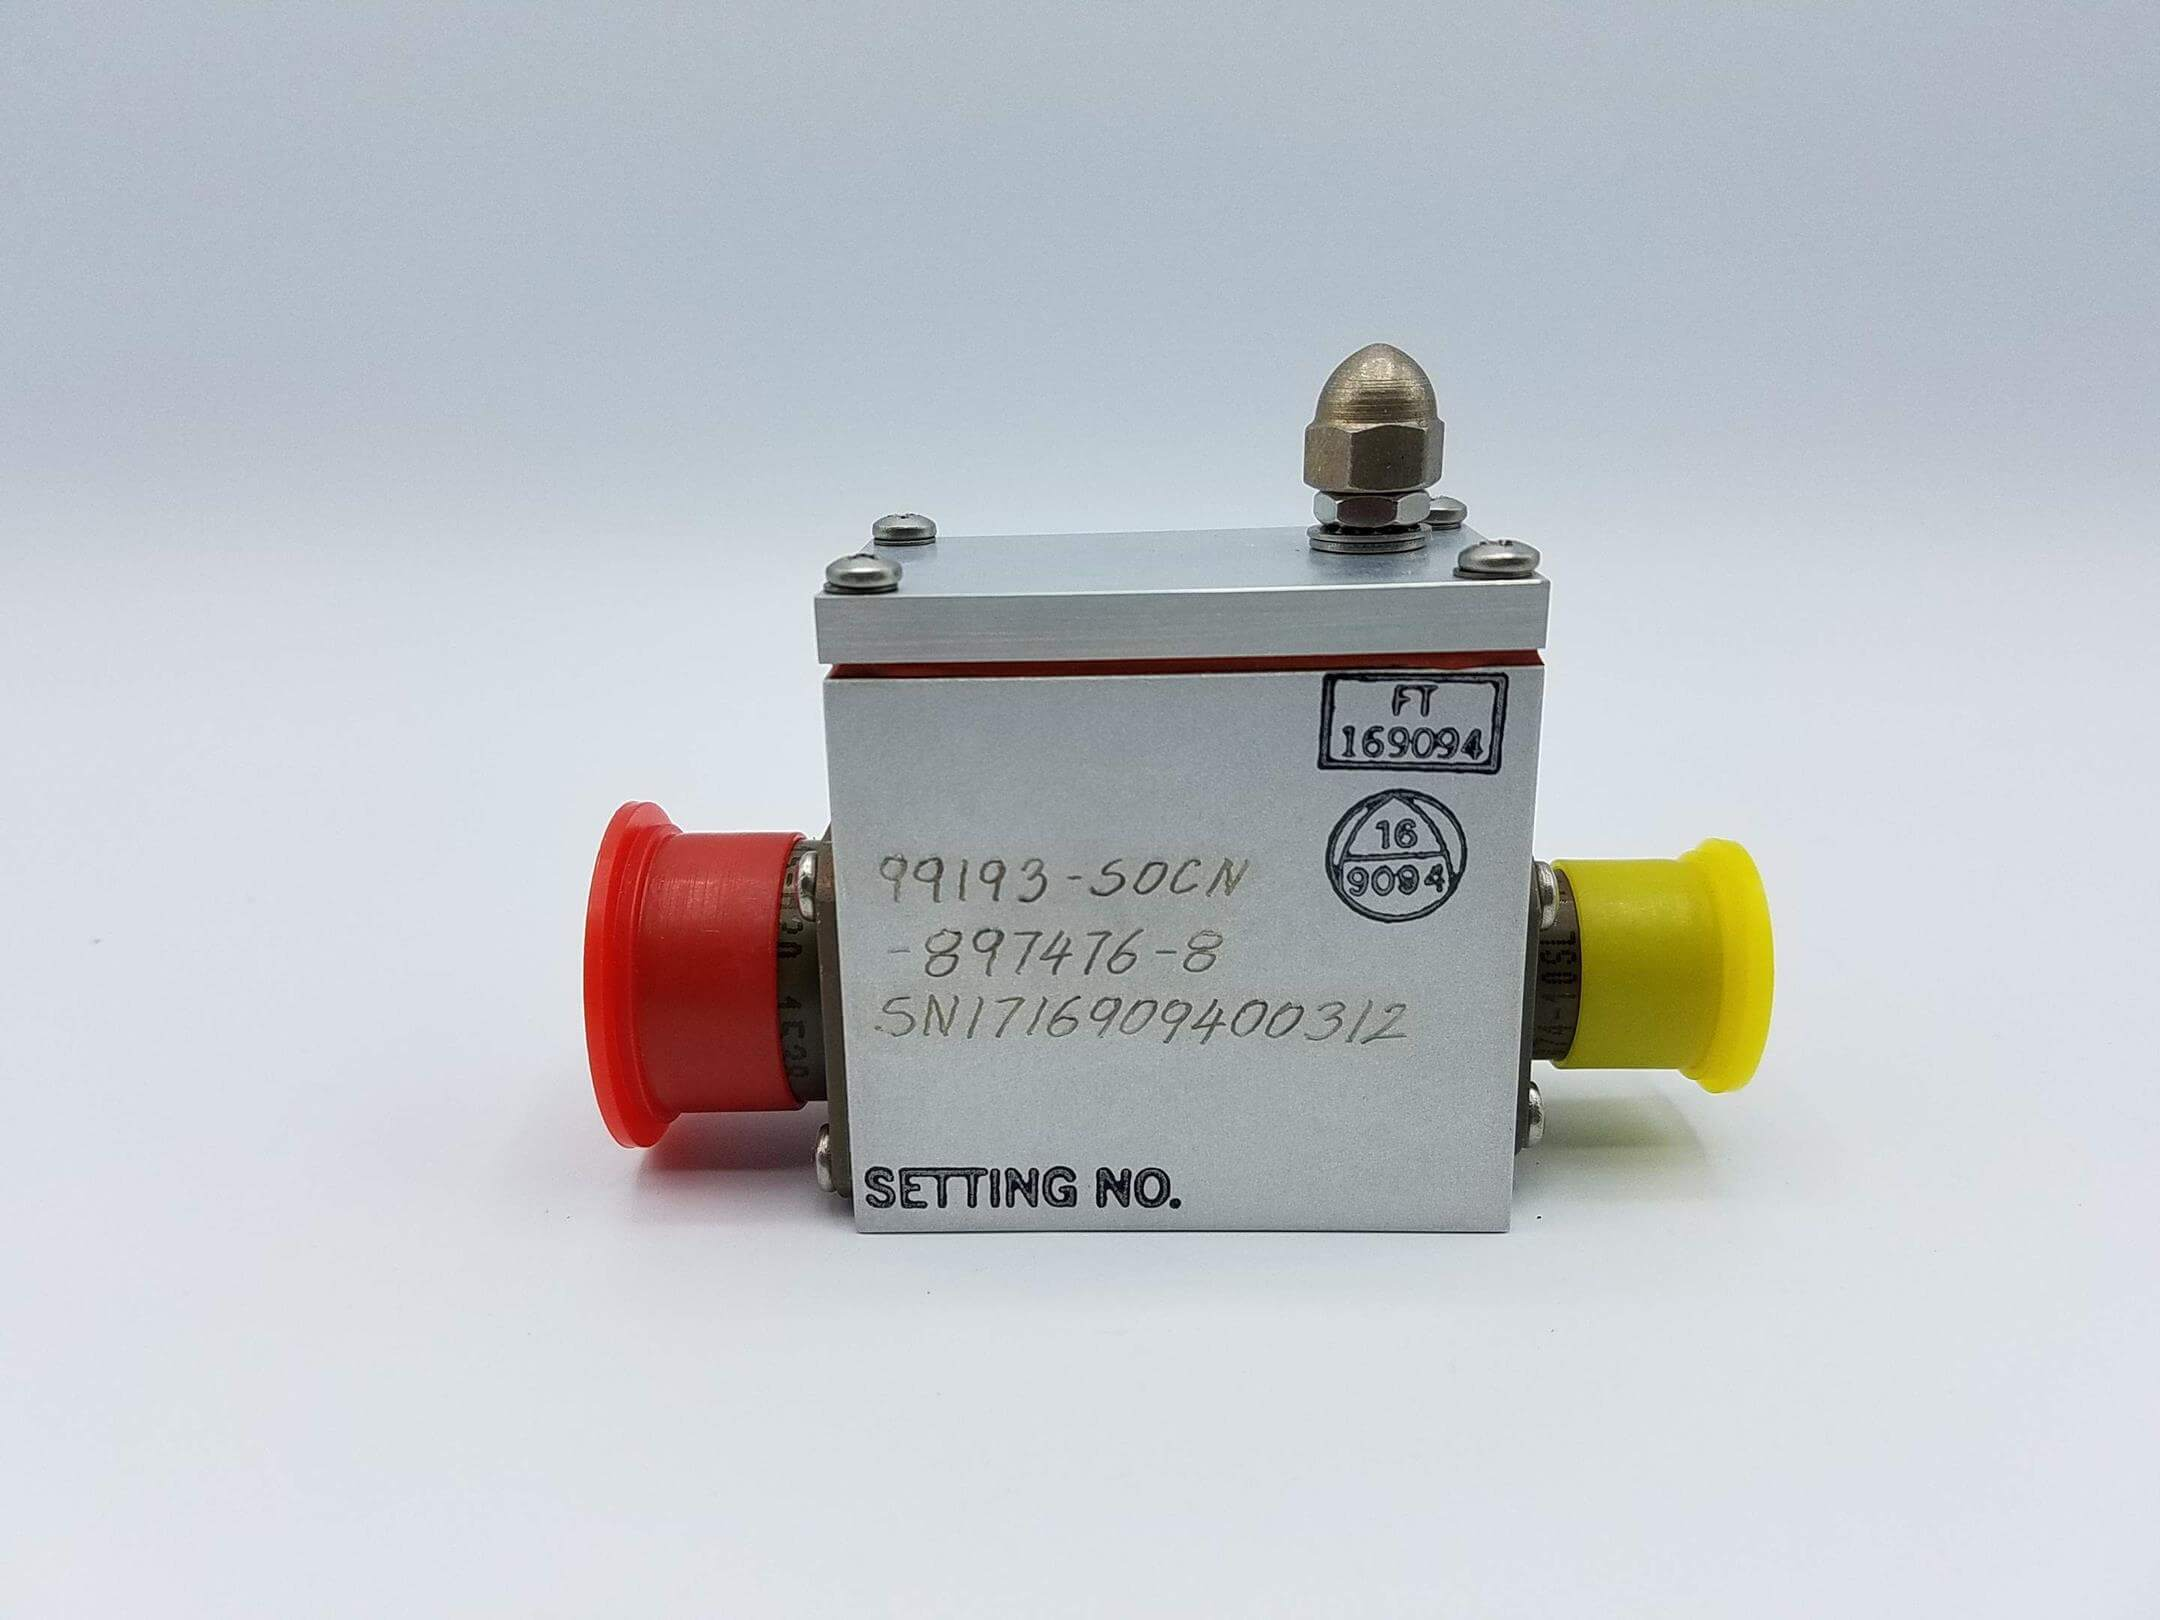 Picture of resistor part number 897476-8